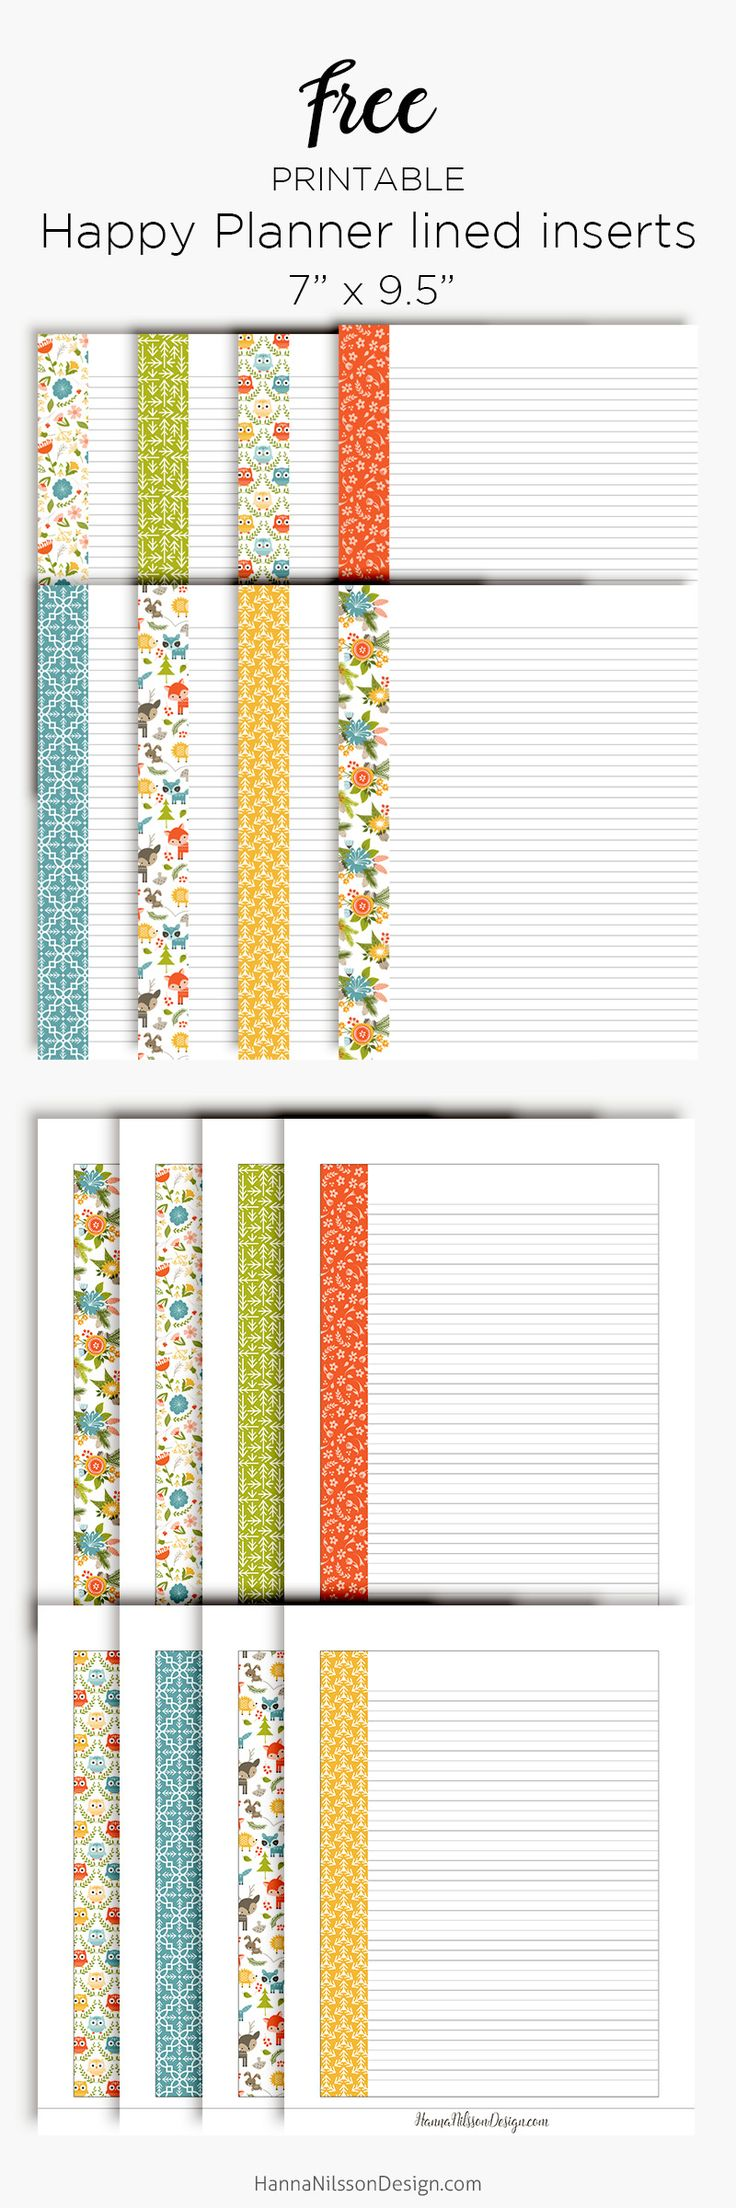 Lined planner inserts | Printables | Happy planner ...